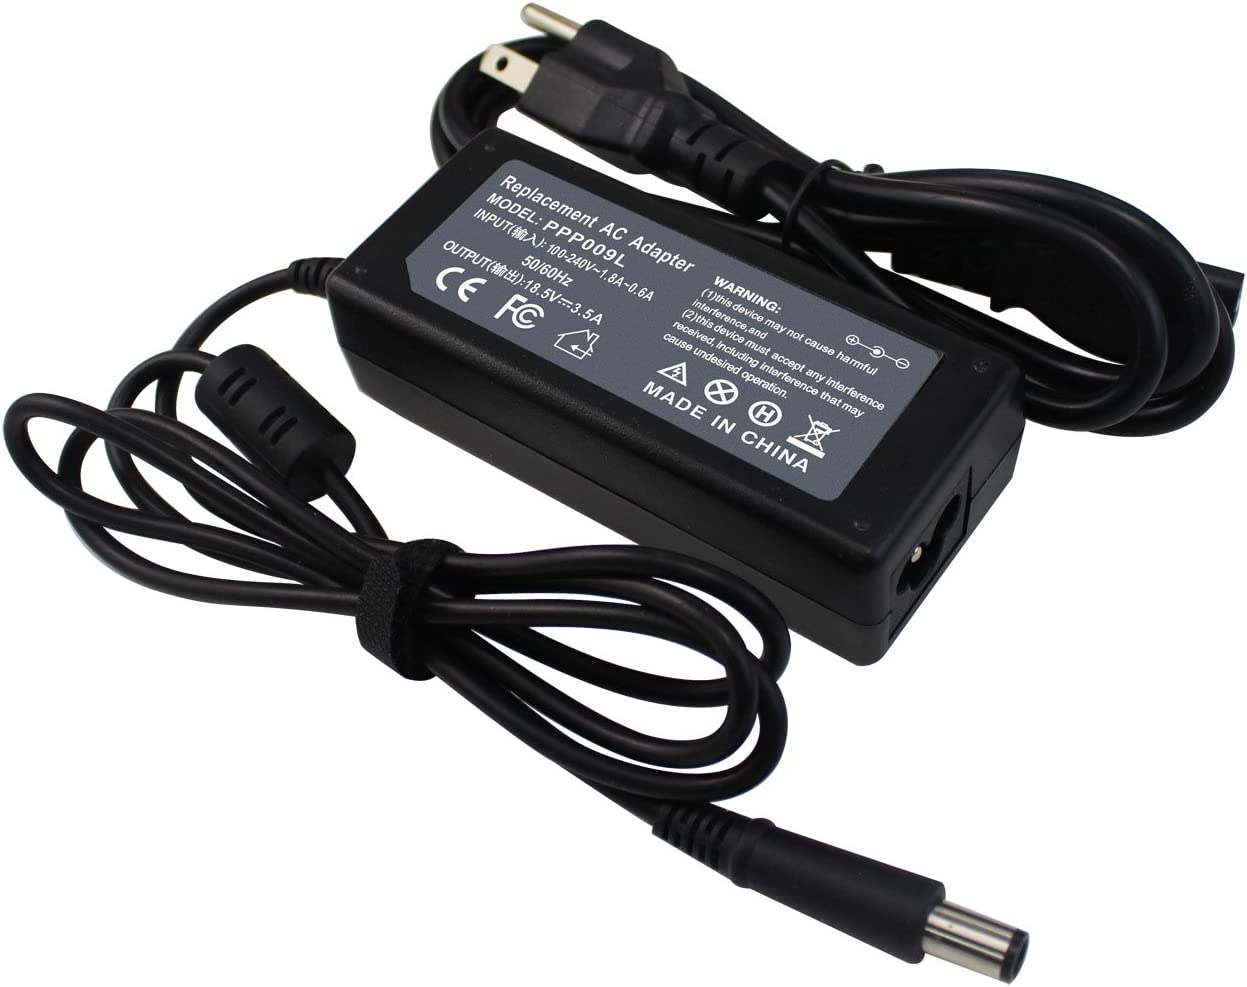 Easy&Fine 693711-001 677774-001 Ac Adapter Charger for HP Probook 430 440 450 455 G1 G2 EliteBook 2540p 2560p 2570p 2730p 2740p 6930p 8440p 8460p 8460w Power Supply Cord